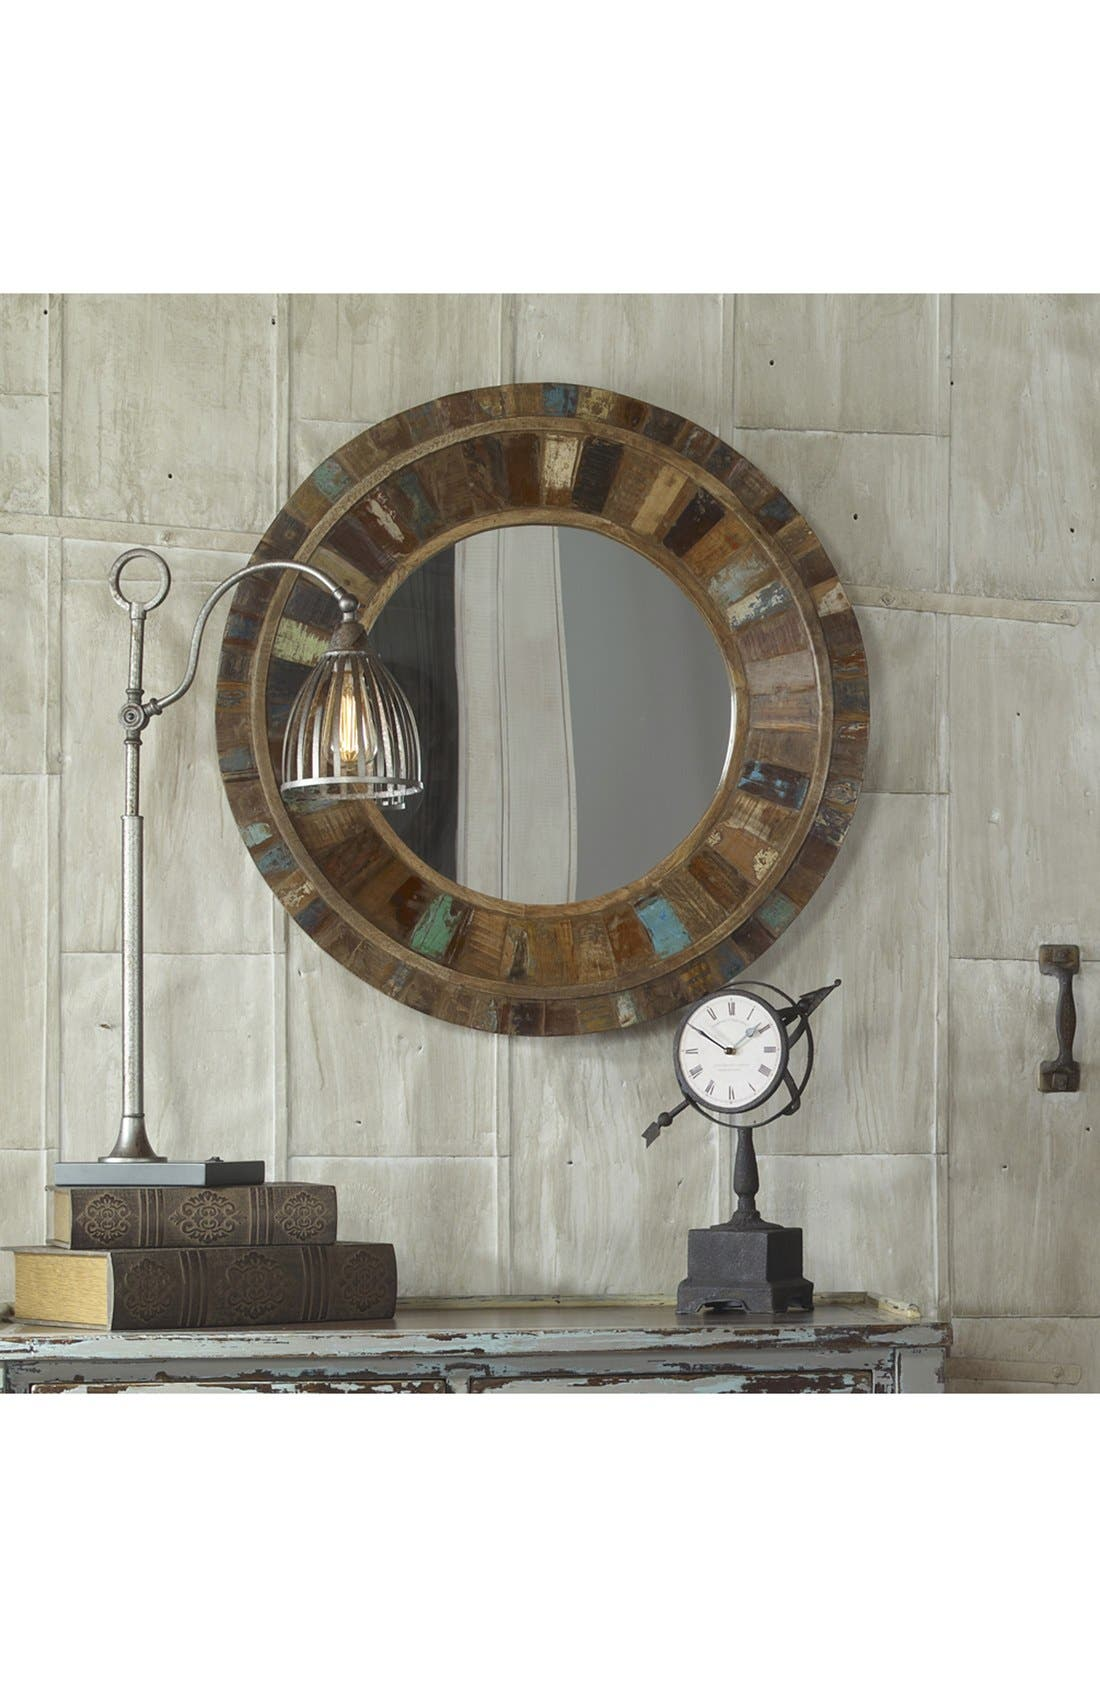 'Jeremiah' Round Wooden Wall Mirror,                             Alternate thumbnail 3, color,                             200